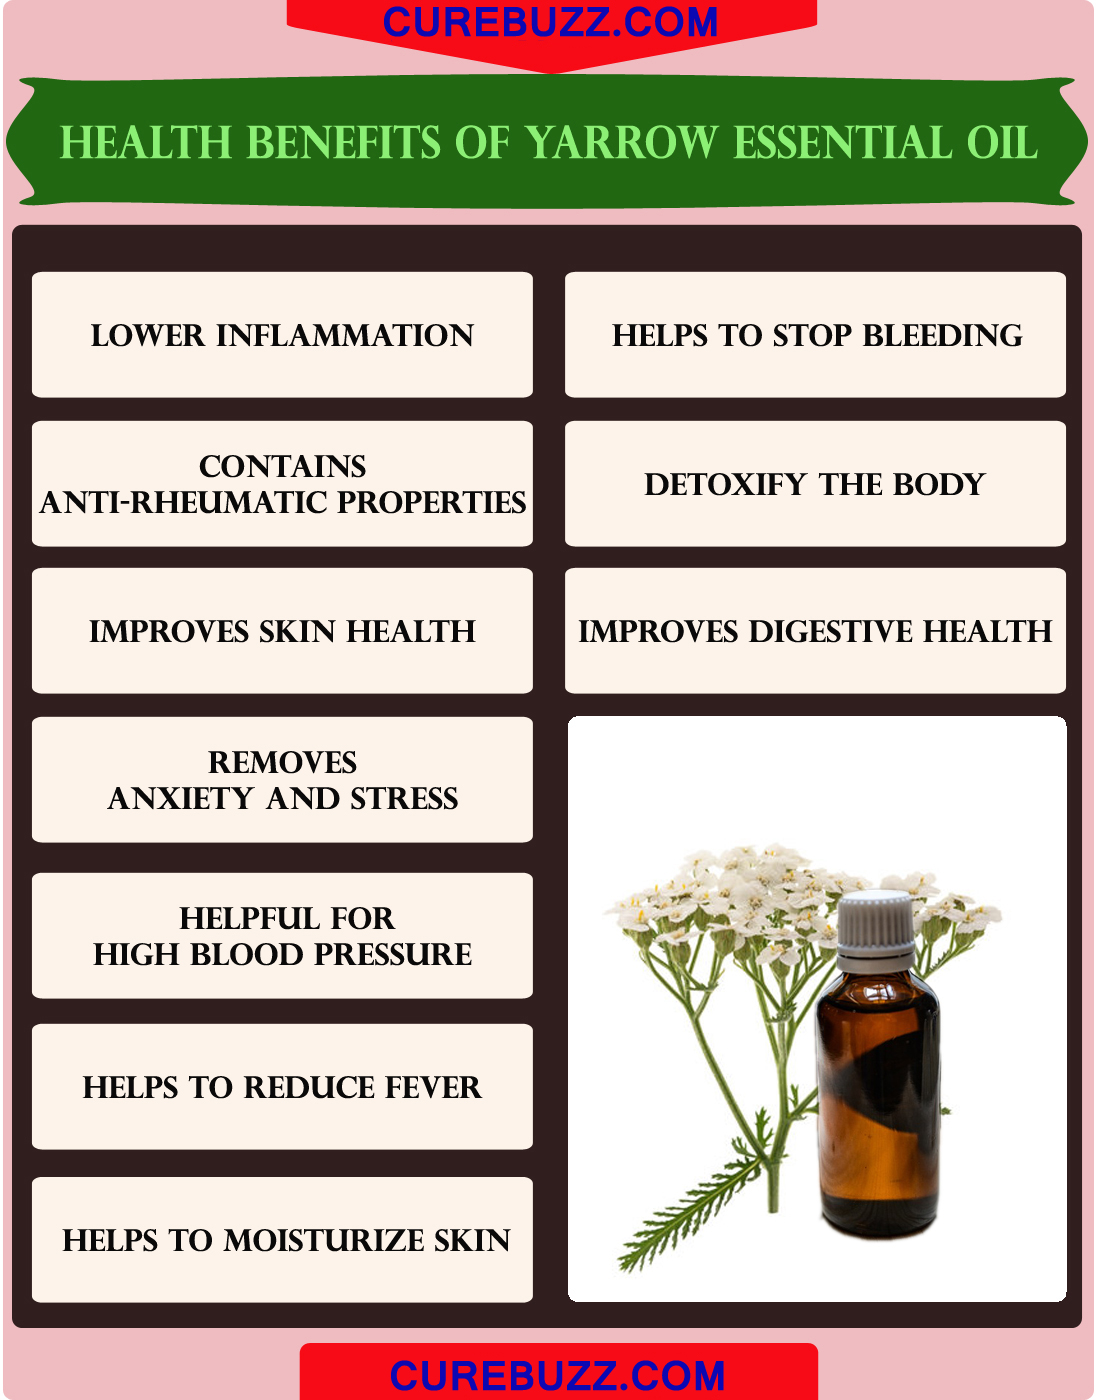 10 Health Benefits Of Yarrow Essential Oil Curebuzz